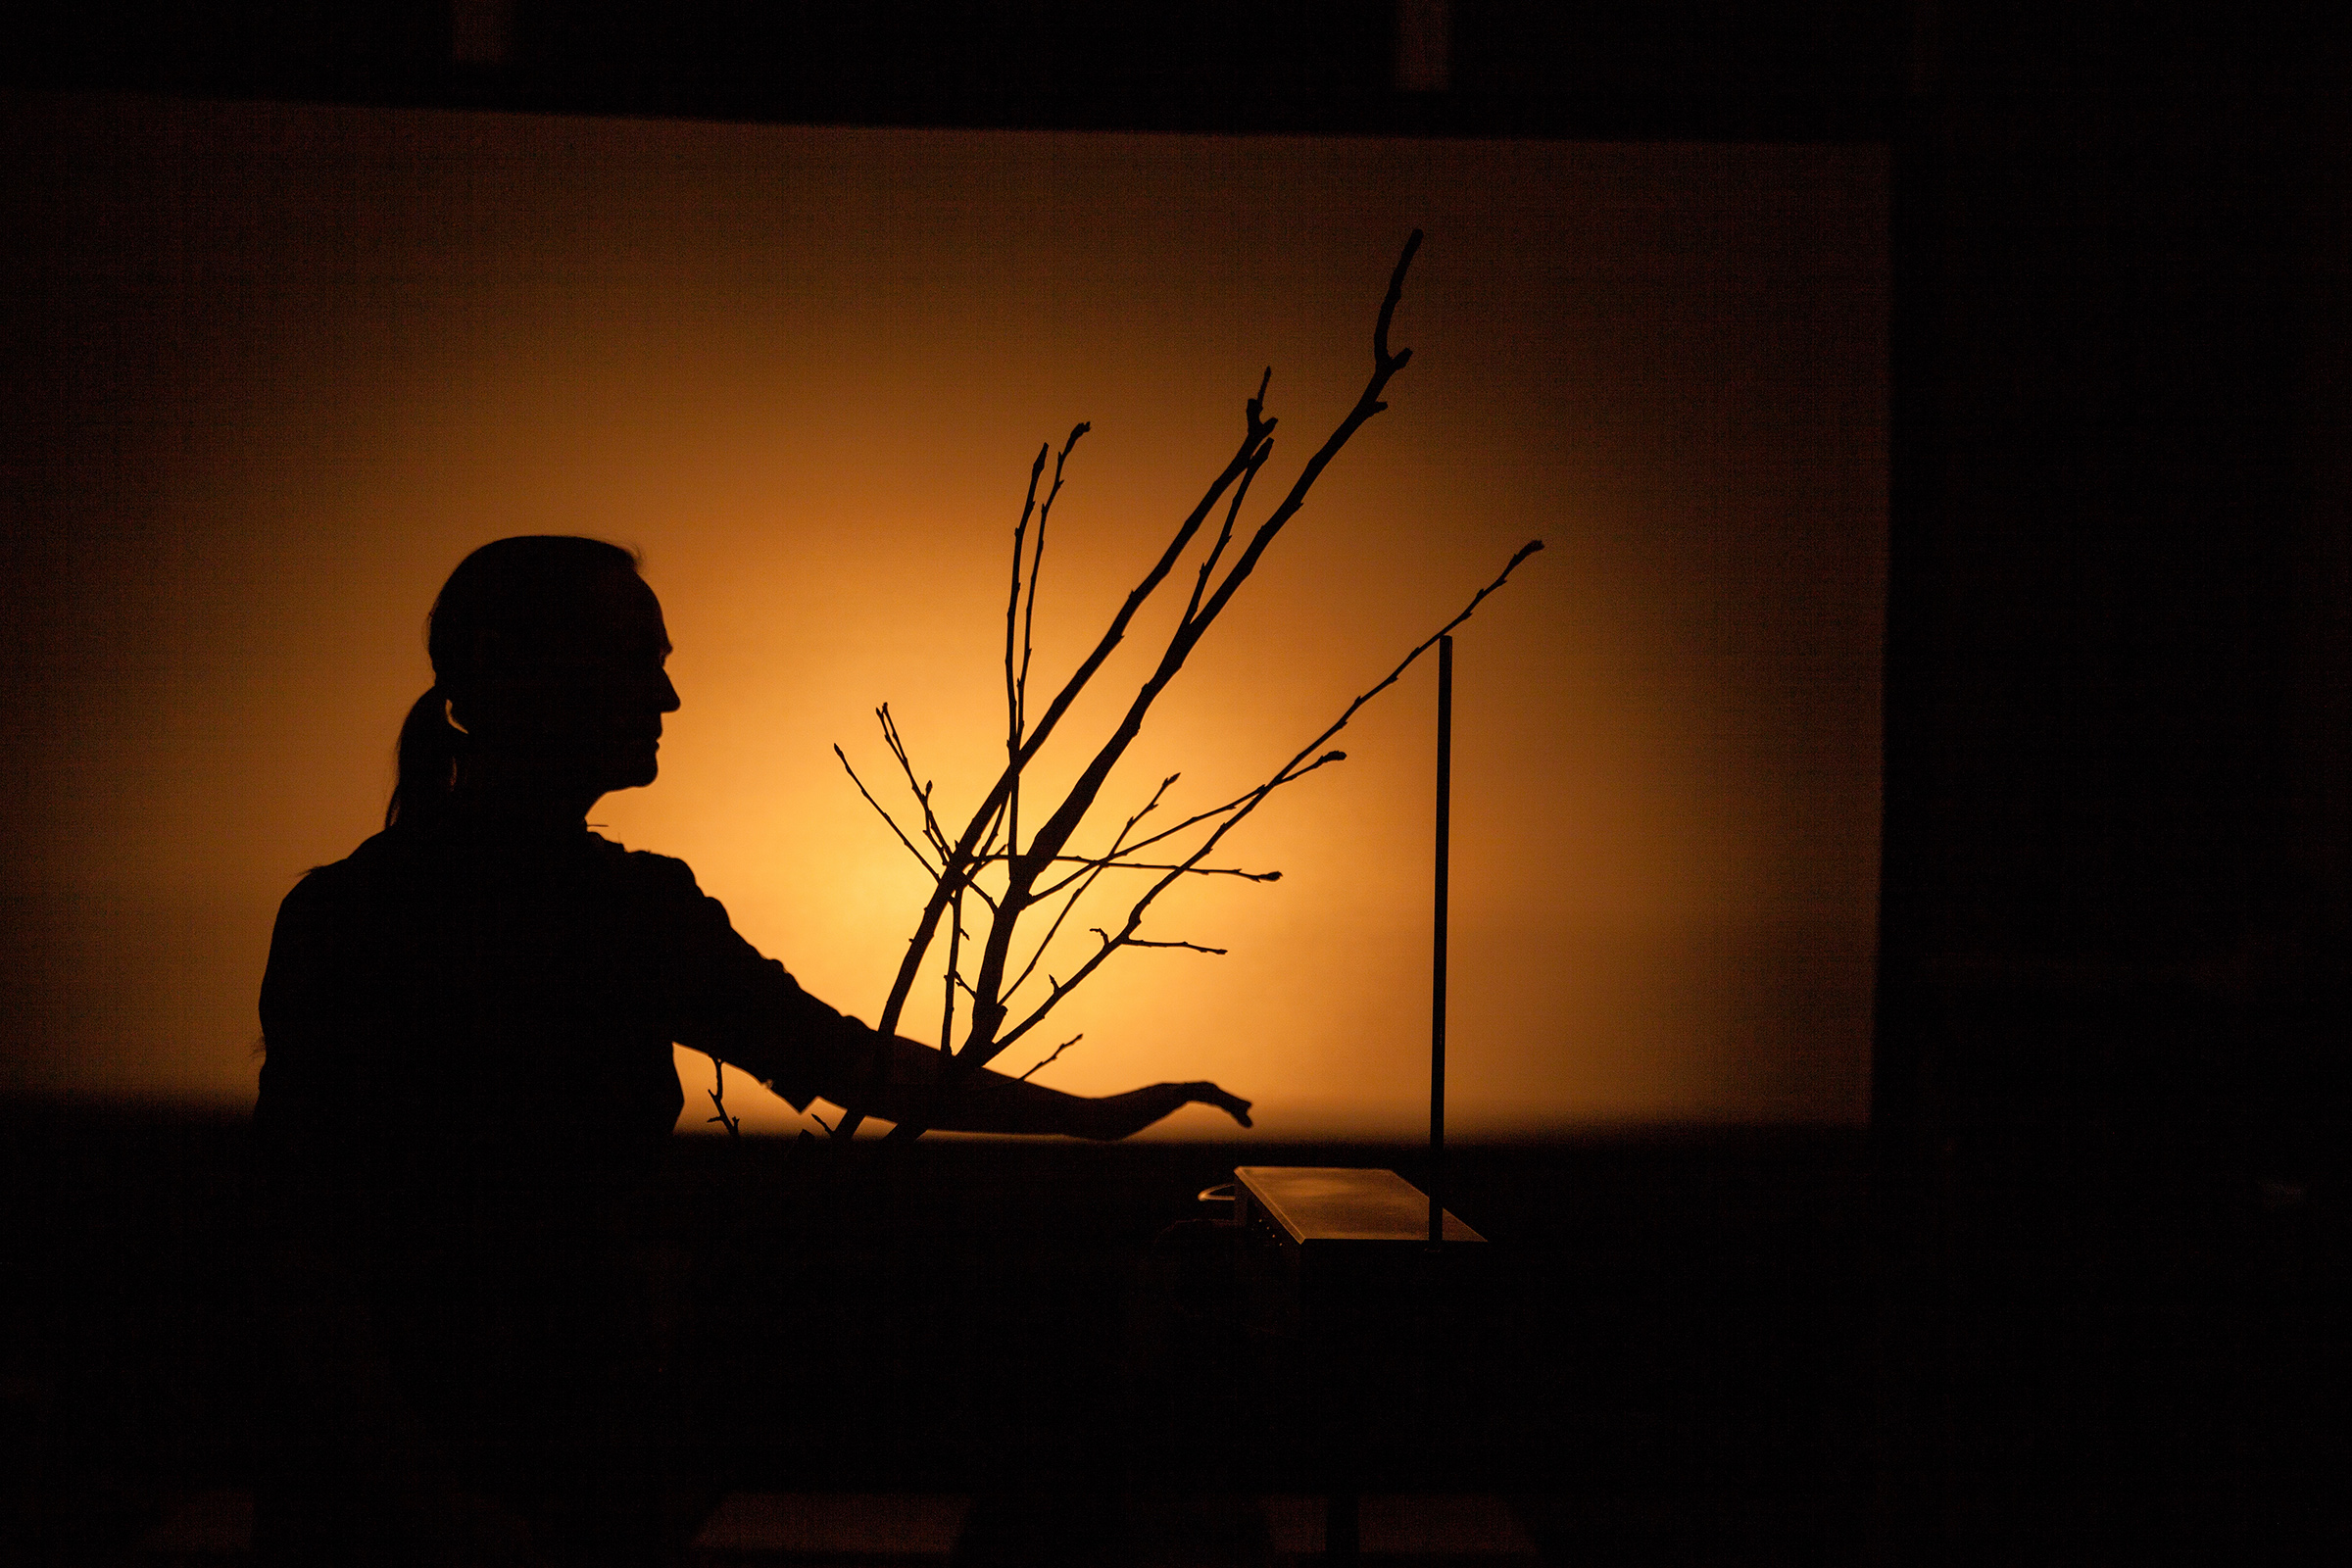 Voice of Nature: The Trial. Maria Lucia Cruz Correia. Light design vinny jones